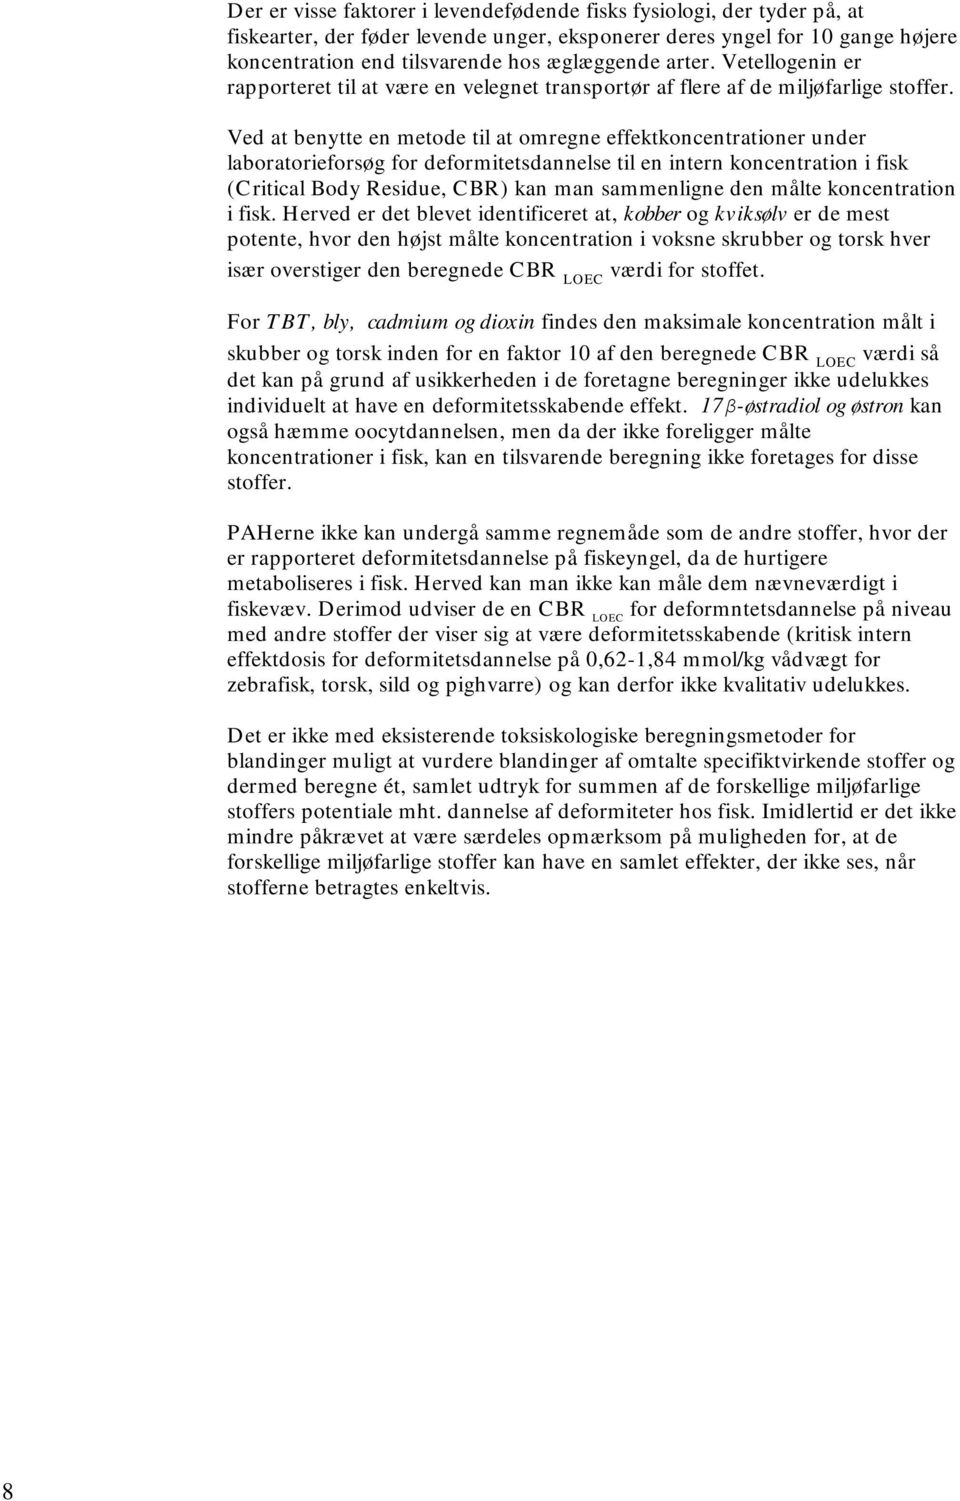 Ved at benytte en metode til at omregne effektkoncentrationer under laboratorieforsøg for deformitetsdannelse til en intern koncentration i fisk (Critical Body Residue, CBR) kan man sammenligne den